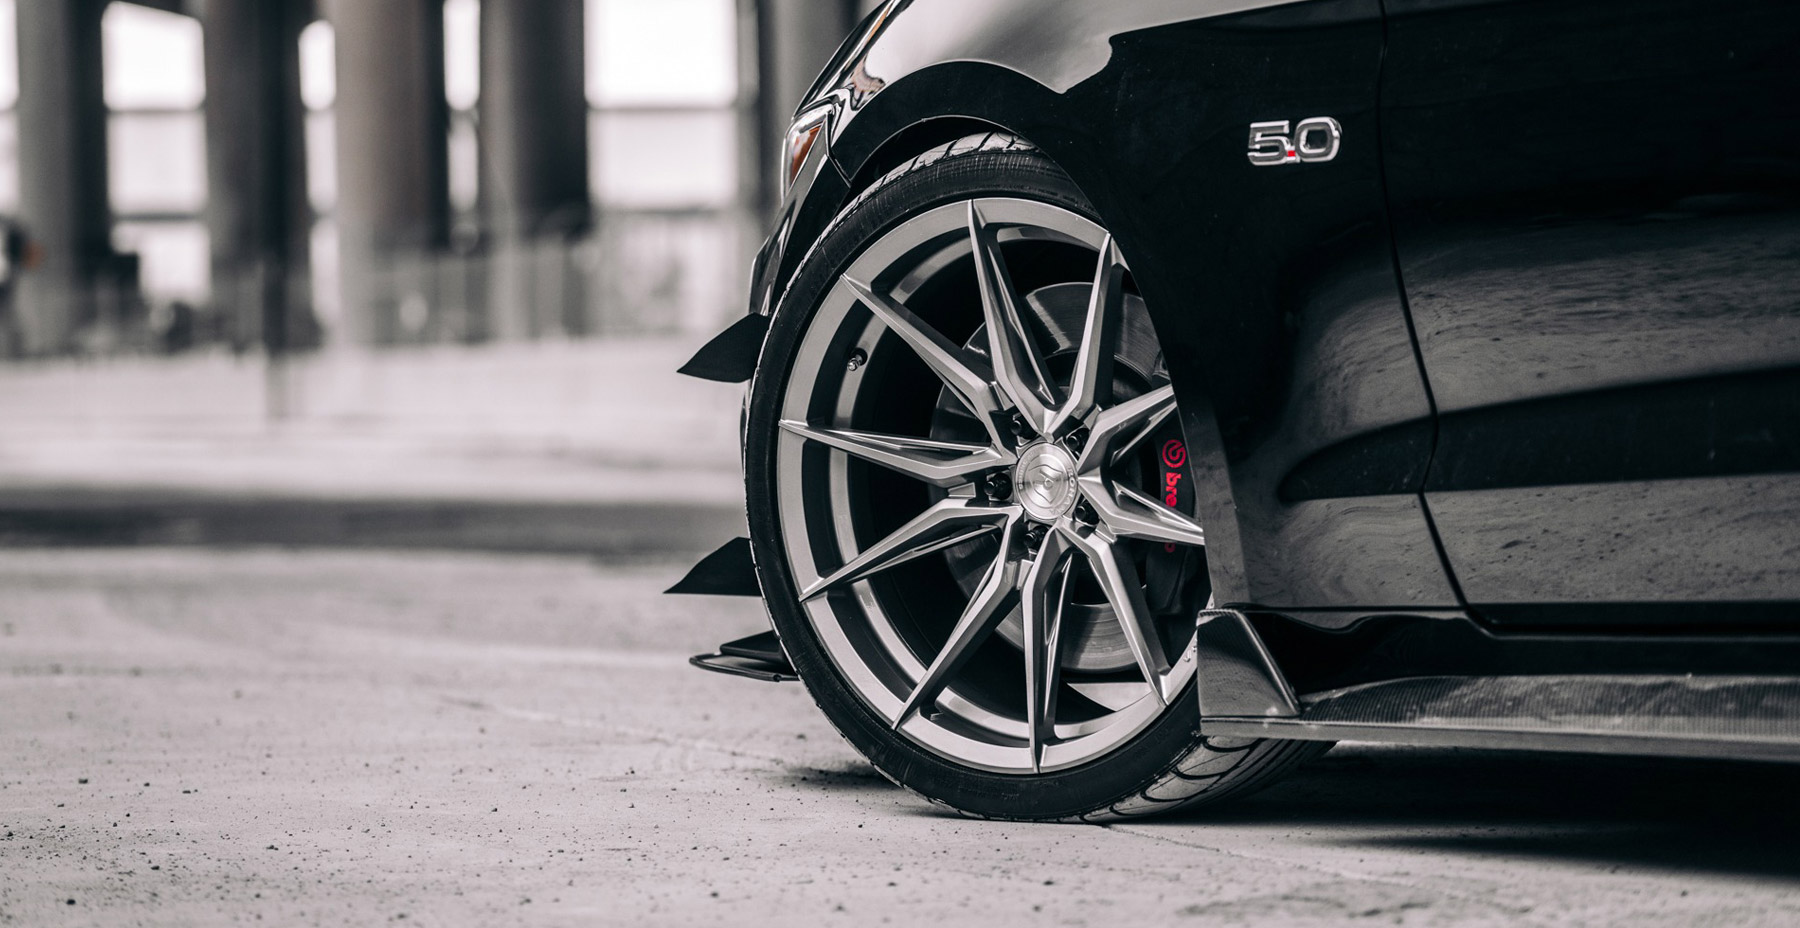 Black Ford Mustang x Rohana RFX13 Wheels (Finished in Brushed Titanium)